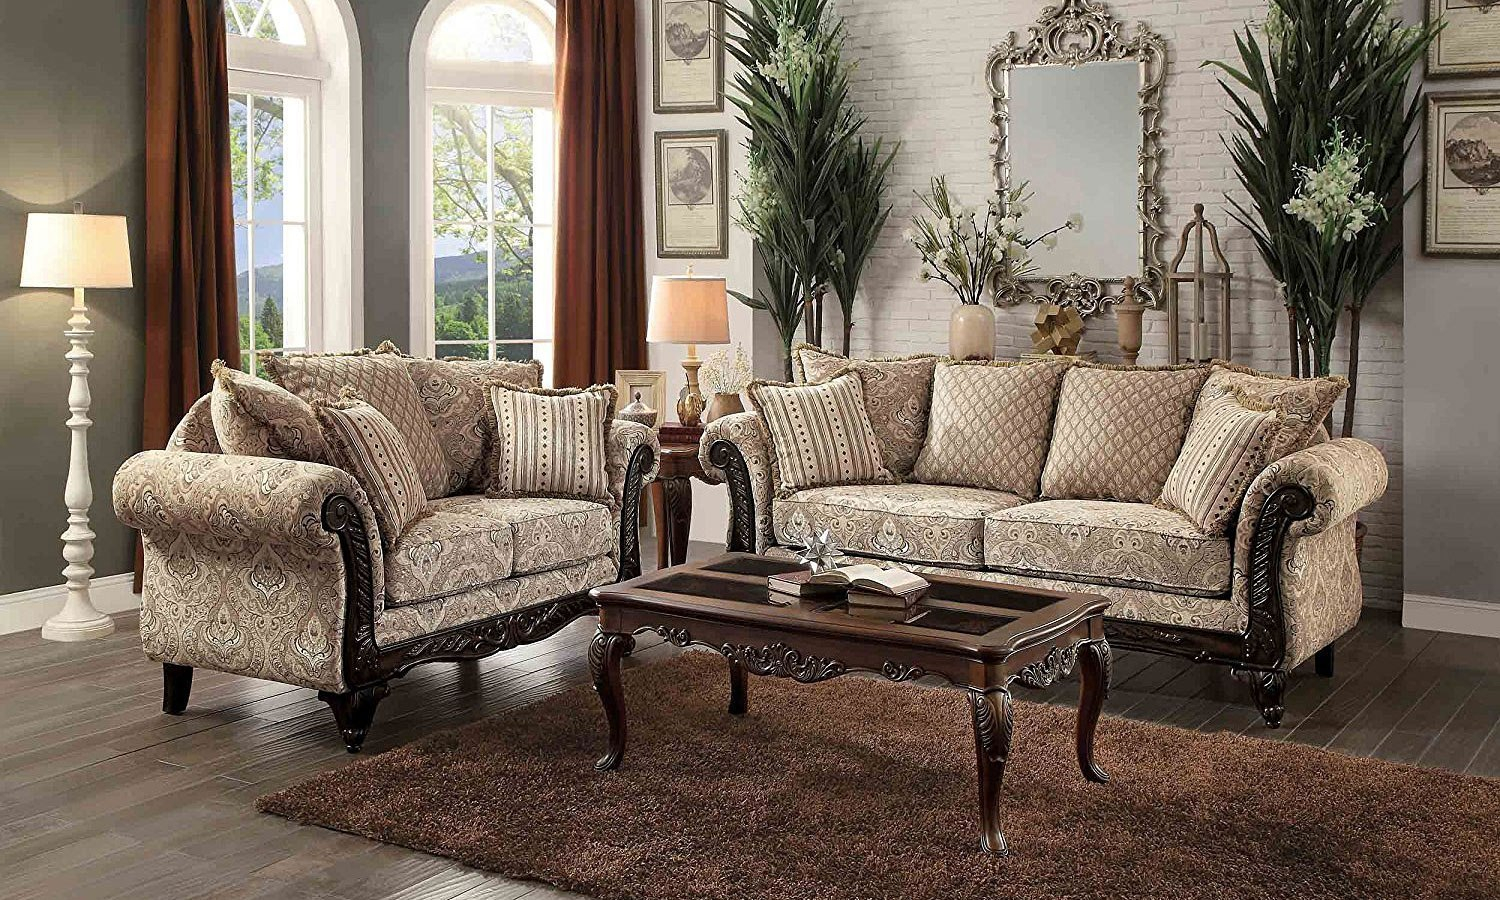 Thibodaux Living Room Set Neutral with 15 Some of the Coolest Initiatives of How to Make Living Room Complete Sets